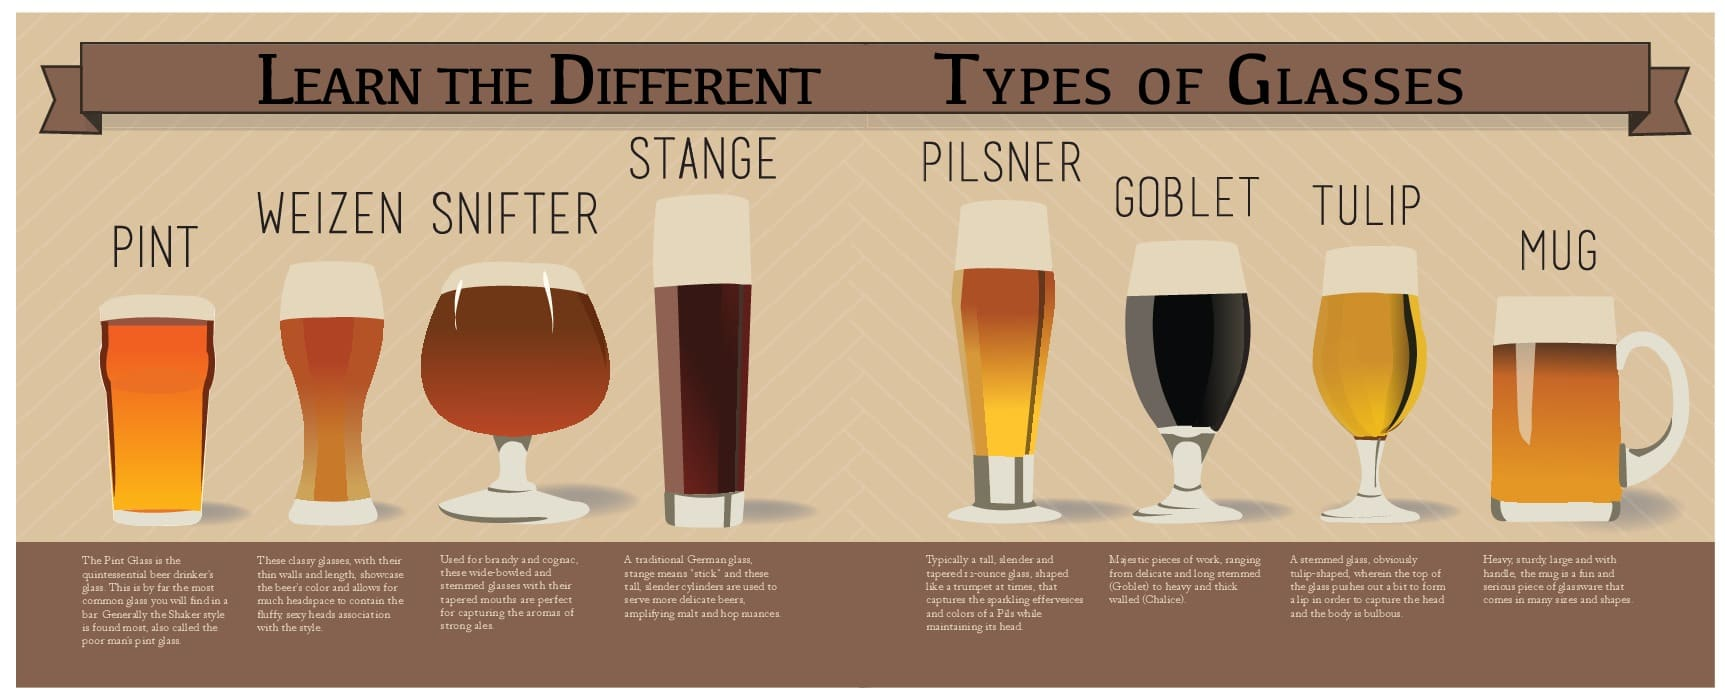 learn-the-different-types-of-glasses_530cfac7029c3.jpg